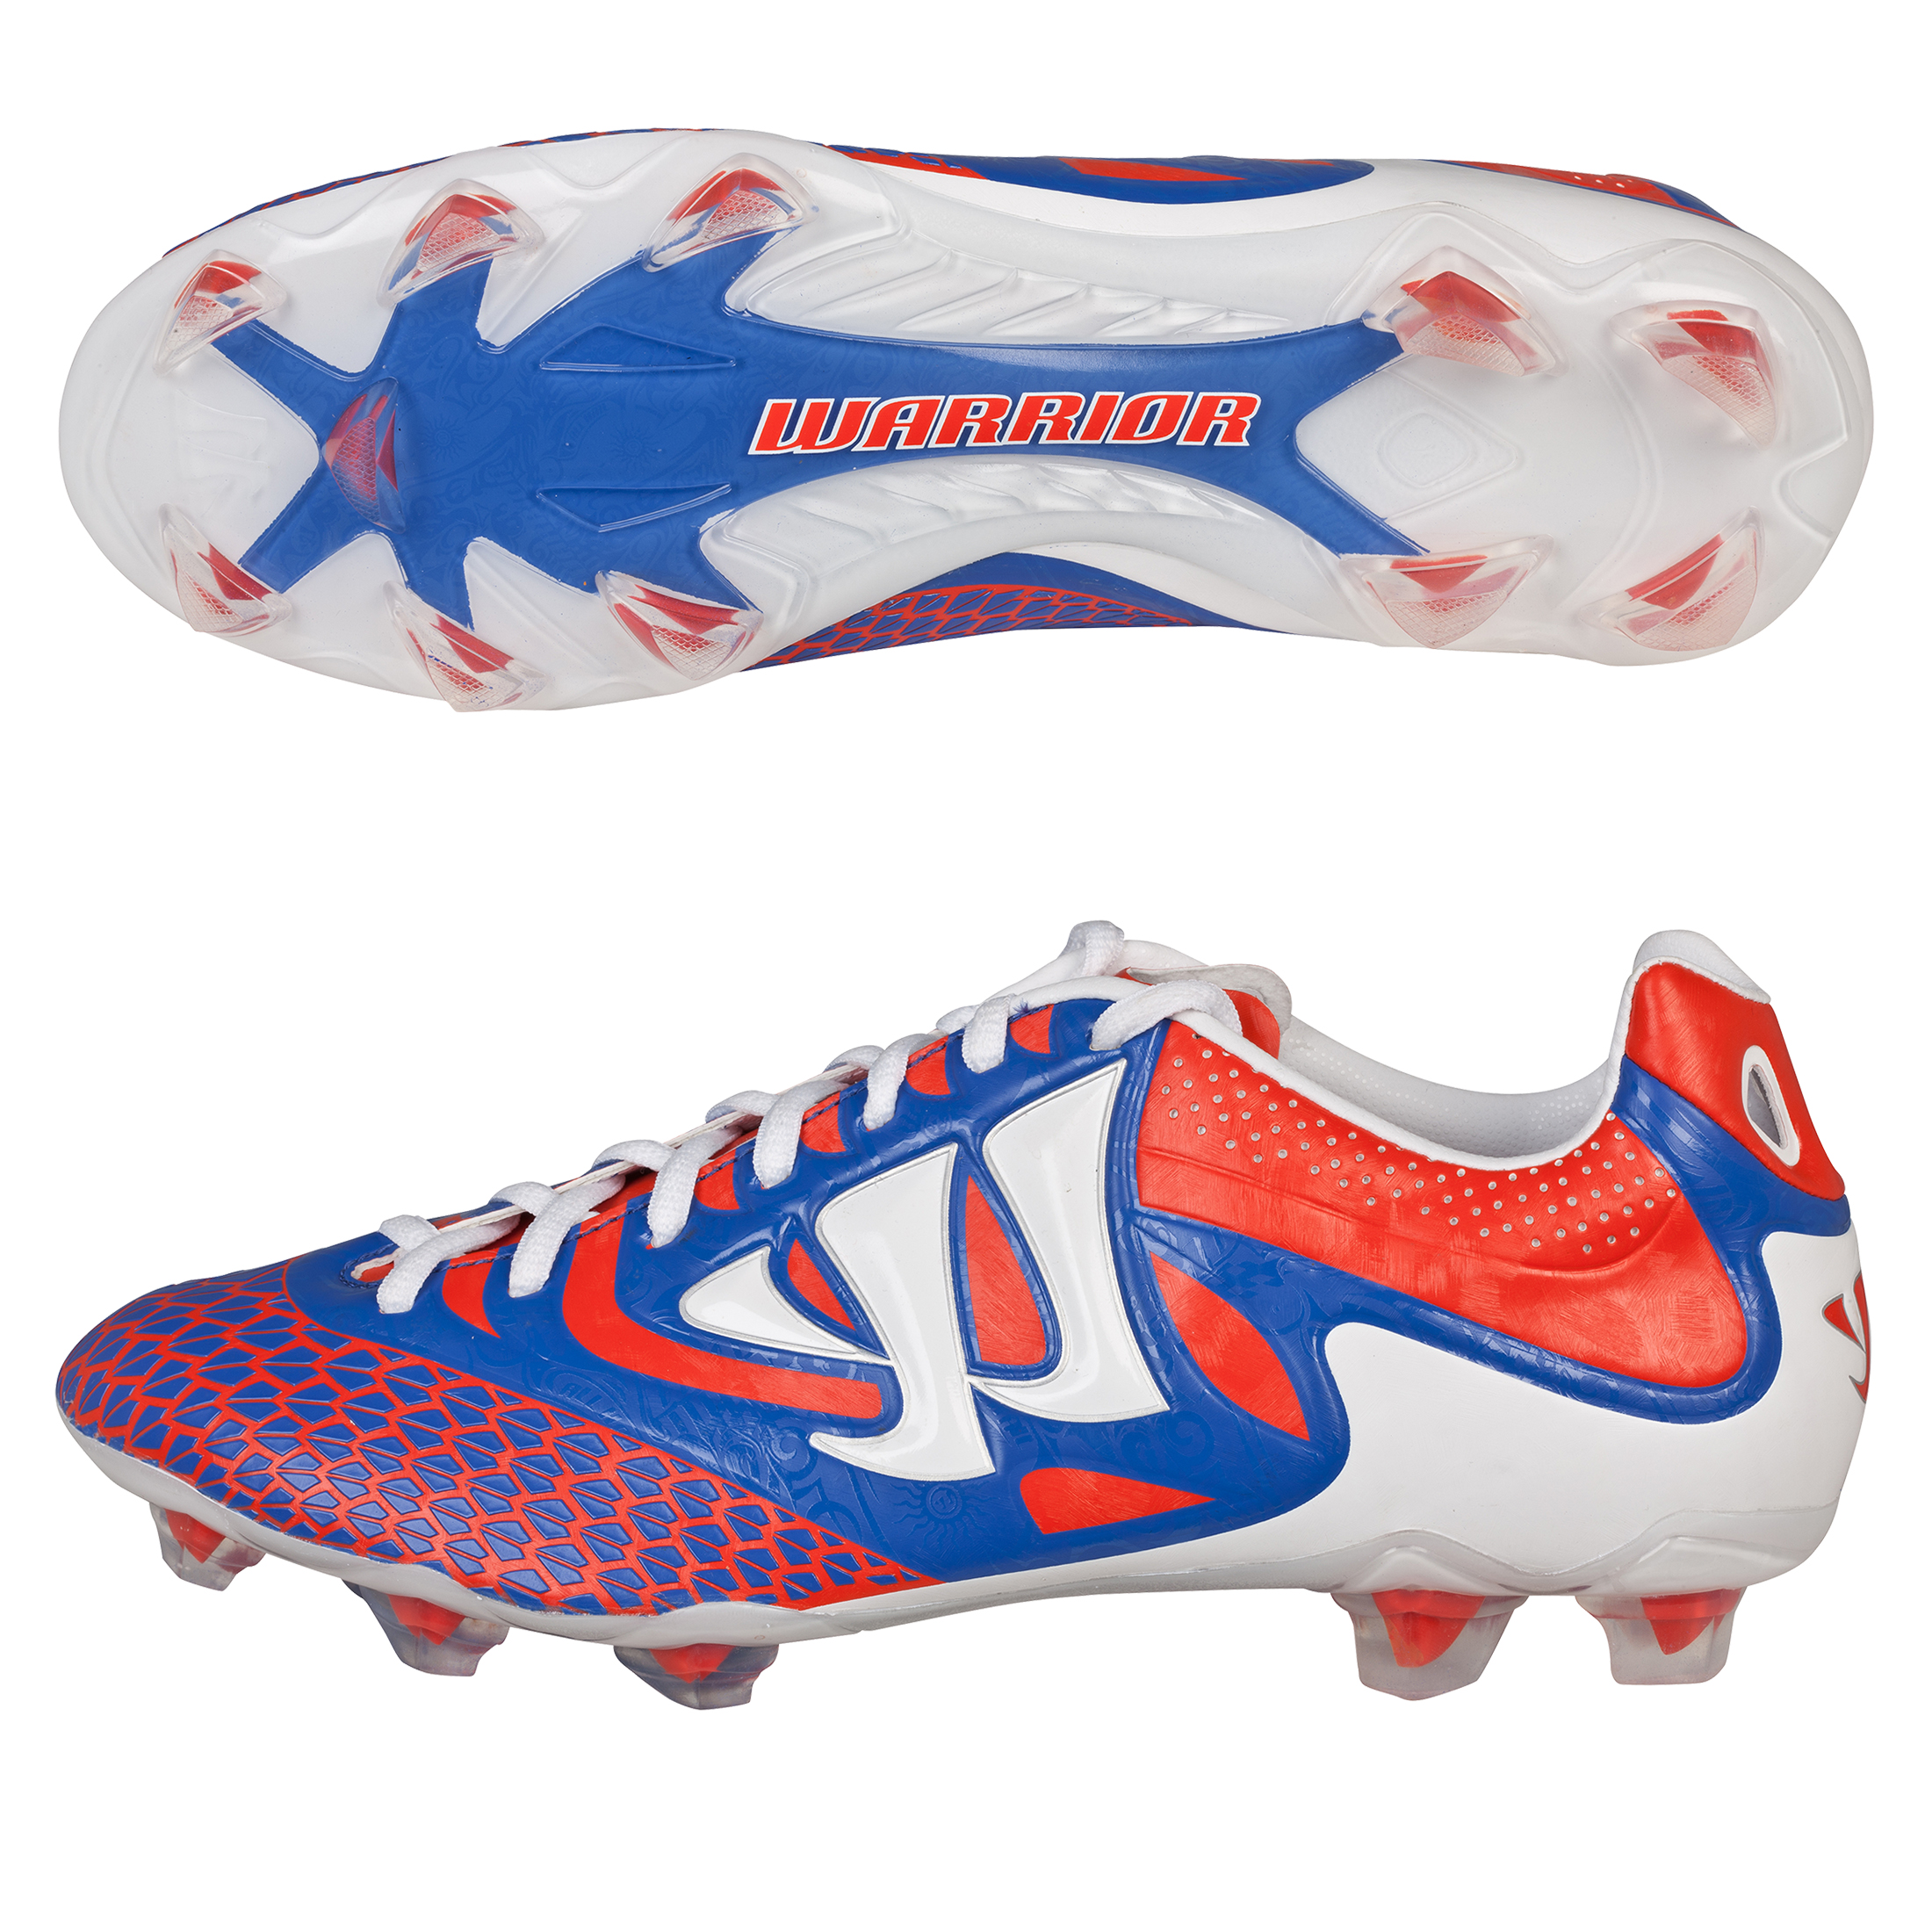 Warrior Sports Skreamer Combat Firm Ground Football Boots - Spicy Orange/Baja Blue/White - Kids